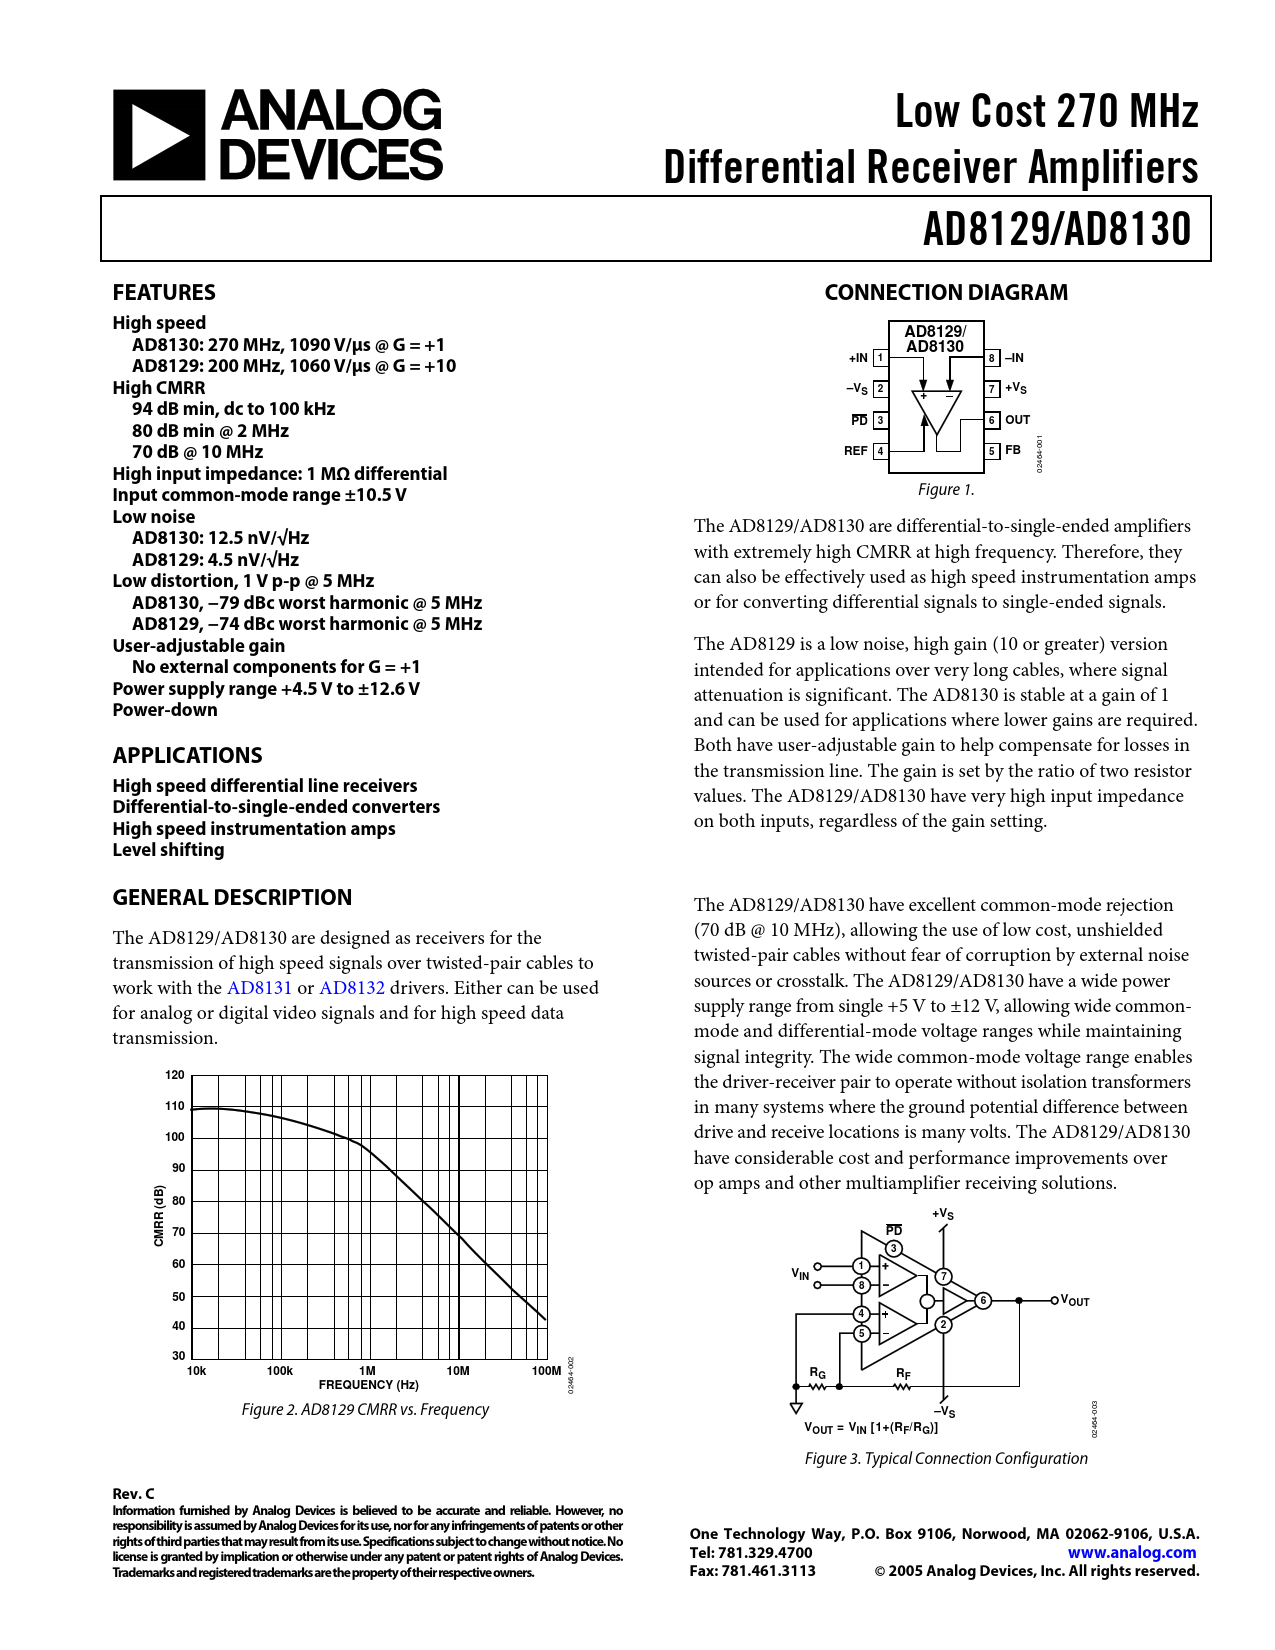 Datasheet AD8129, AD8130 Analog Devices, Версия: C